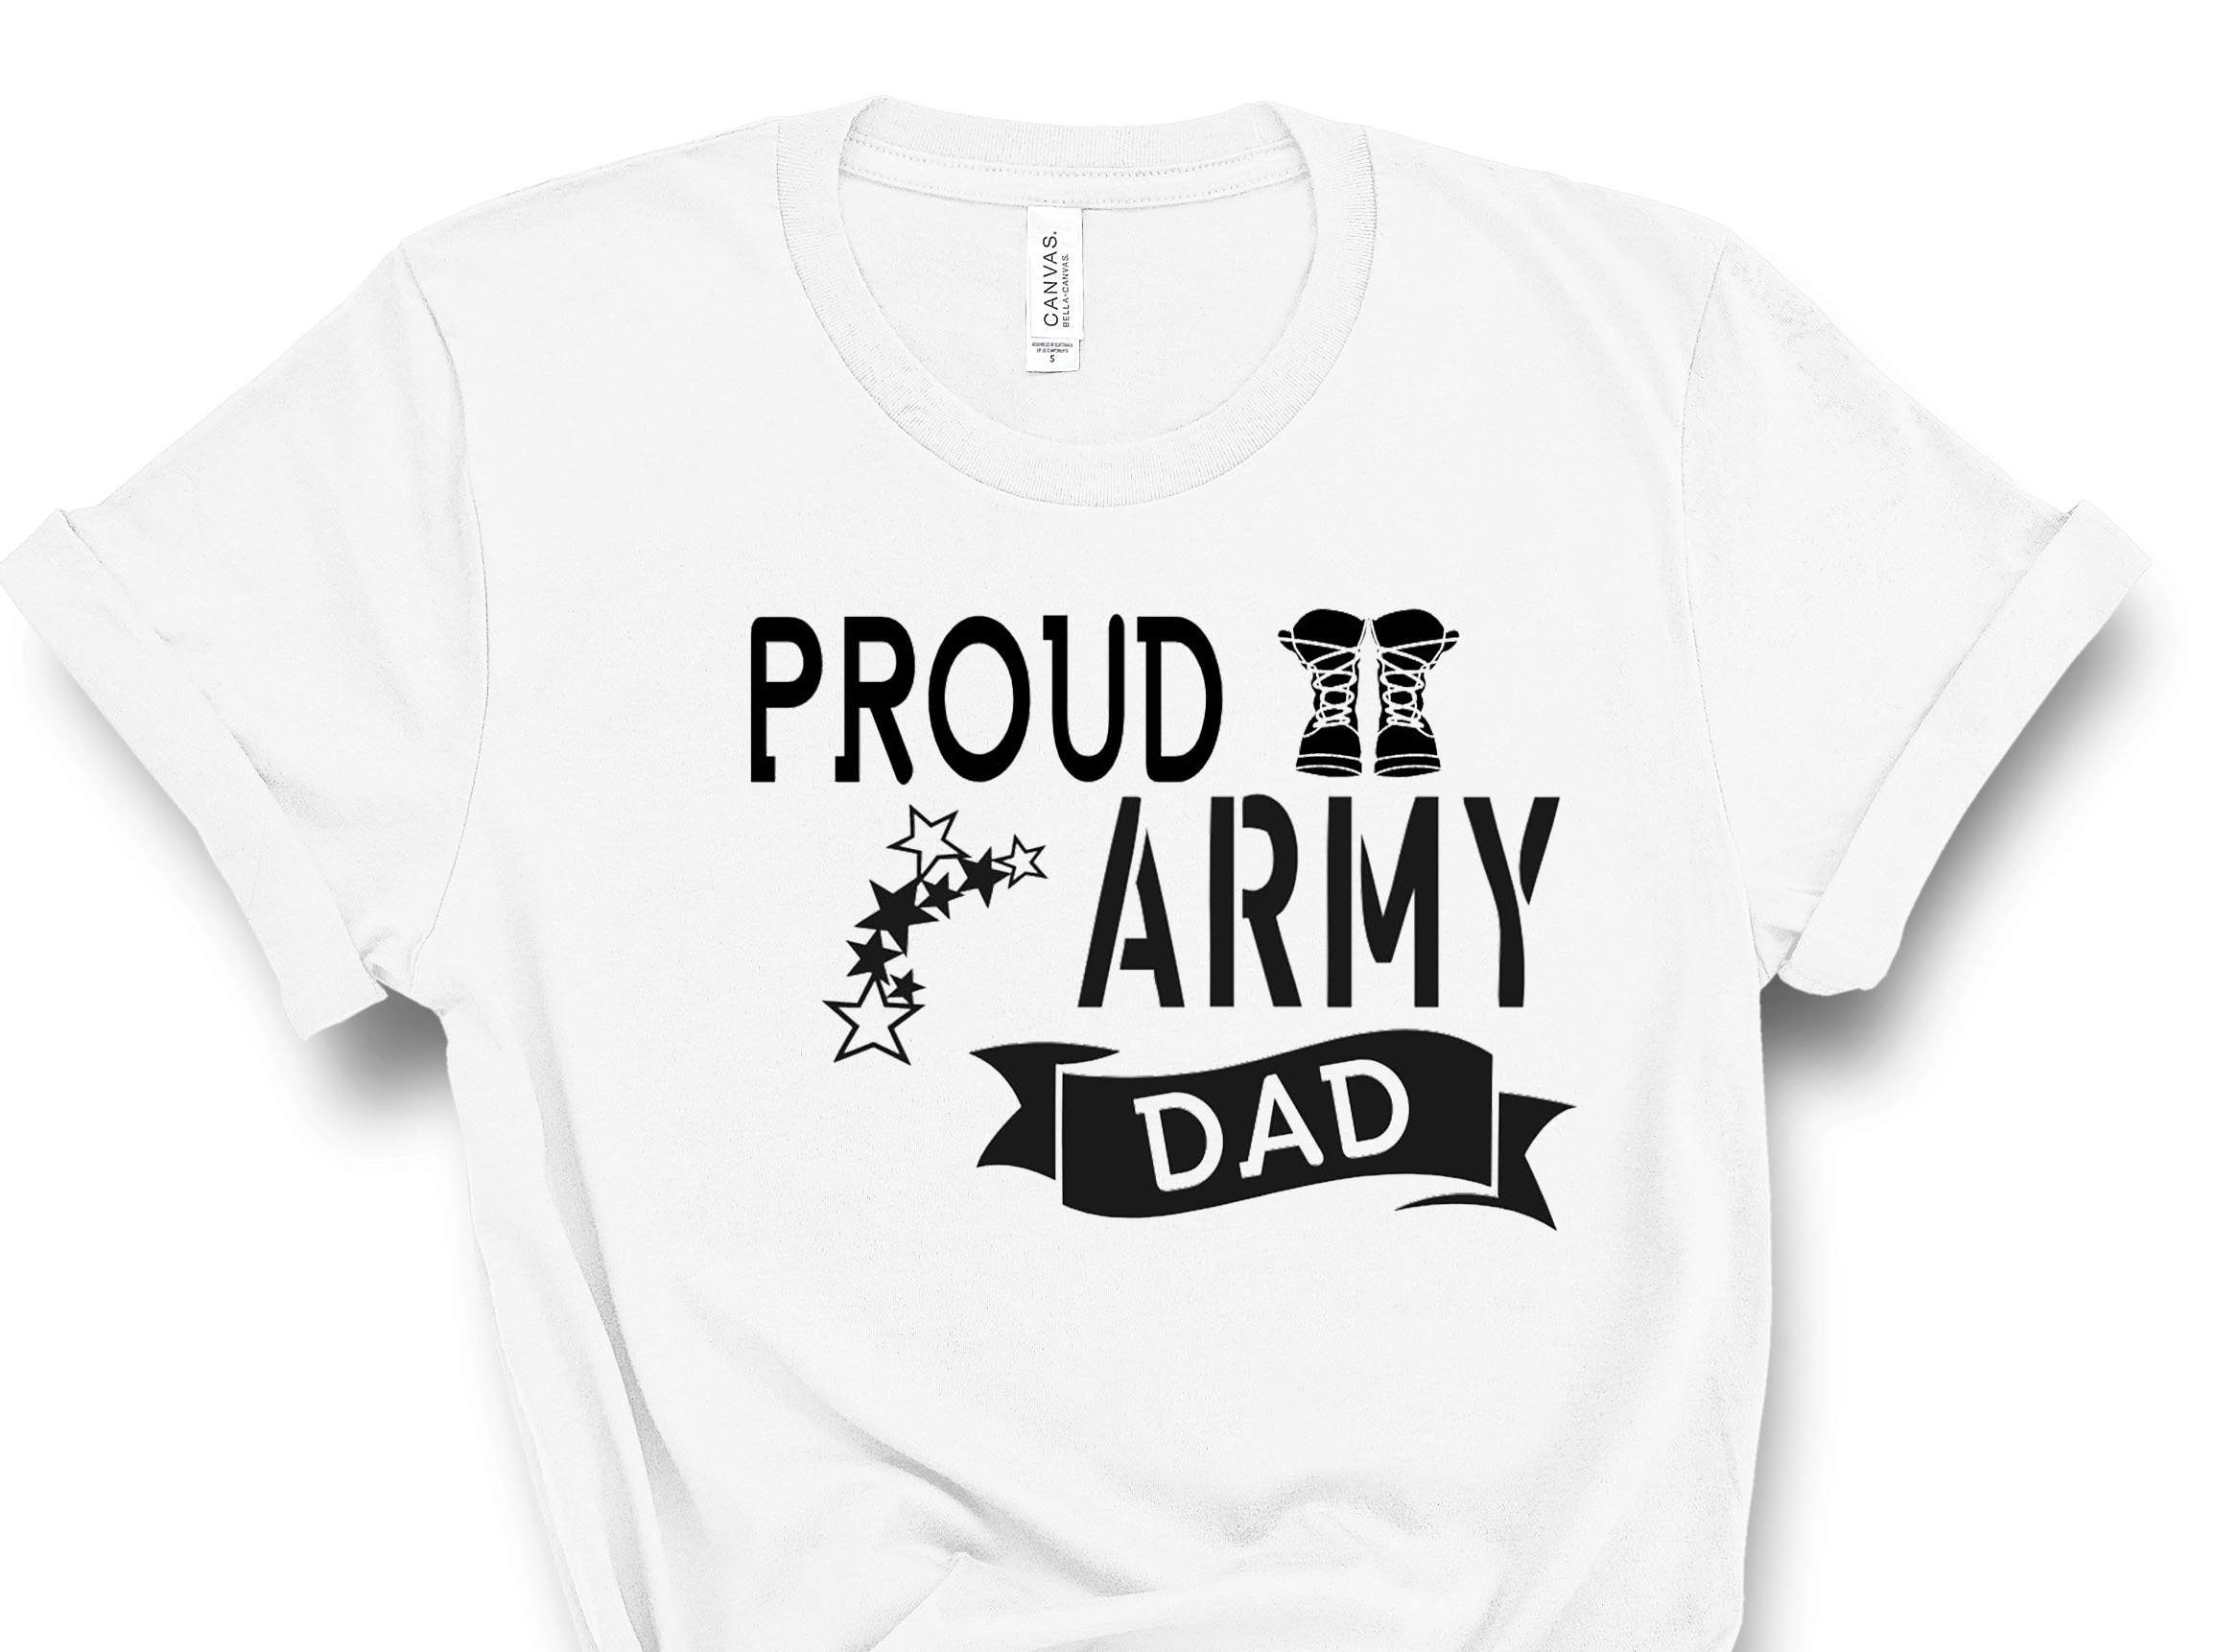 ARMY DAD WHITE